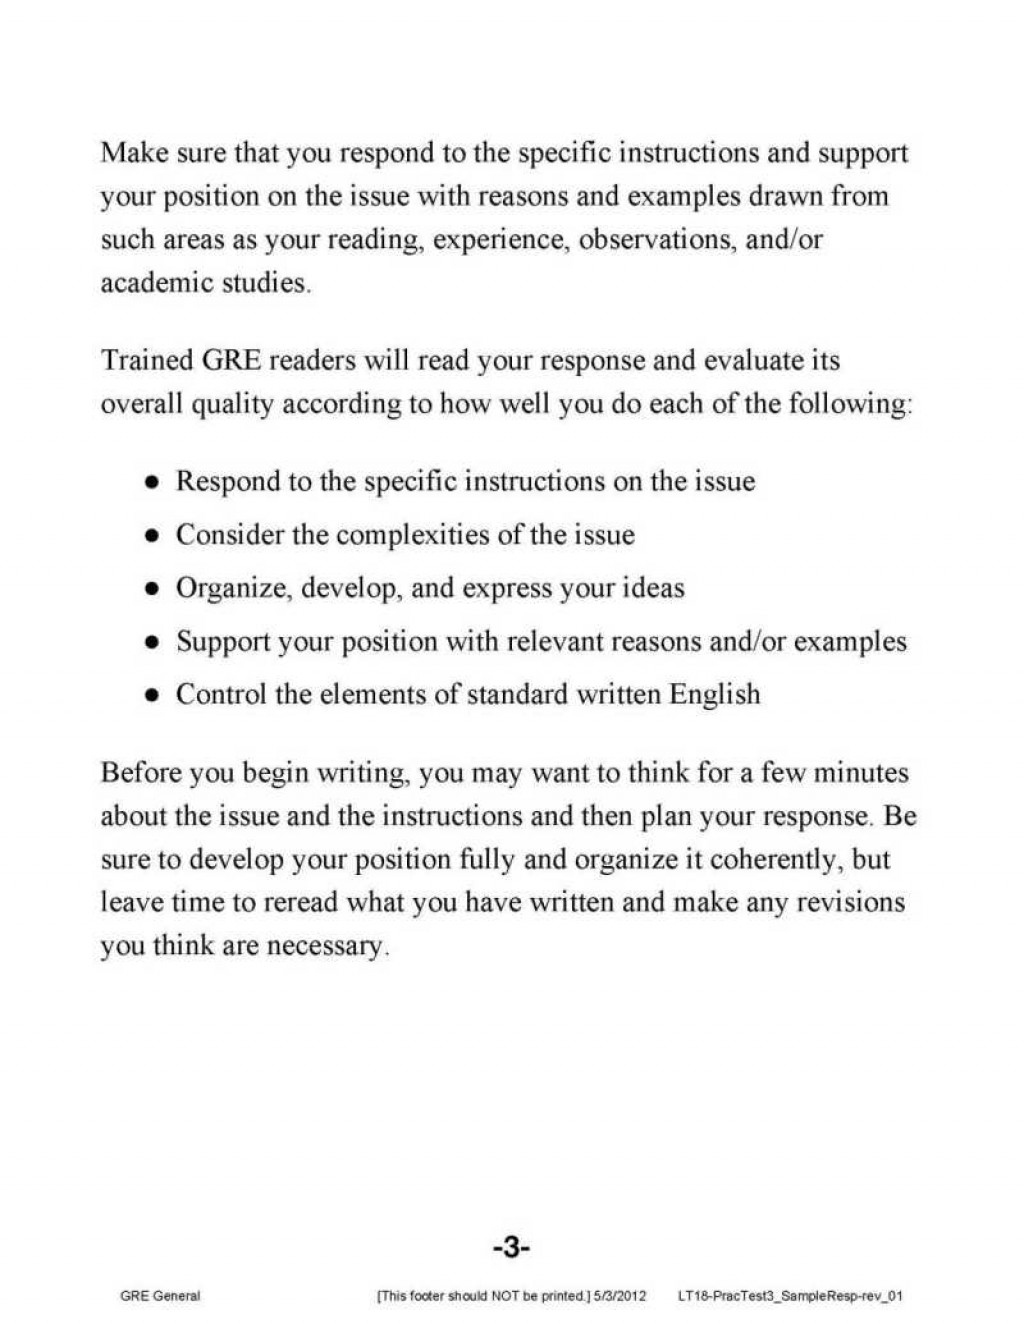 014 Essay Example Sample Gre Essays Issue Responses Poemsrom Co Writing Examples Analytical Ess Tips Format Topics Pdf Strategies Preparation Books Unique Practice Prompts Argument Large